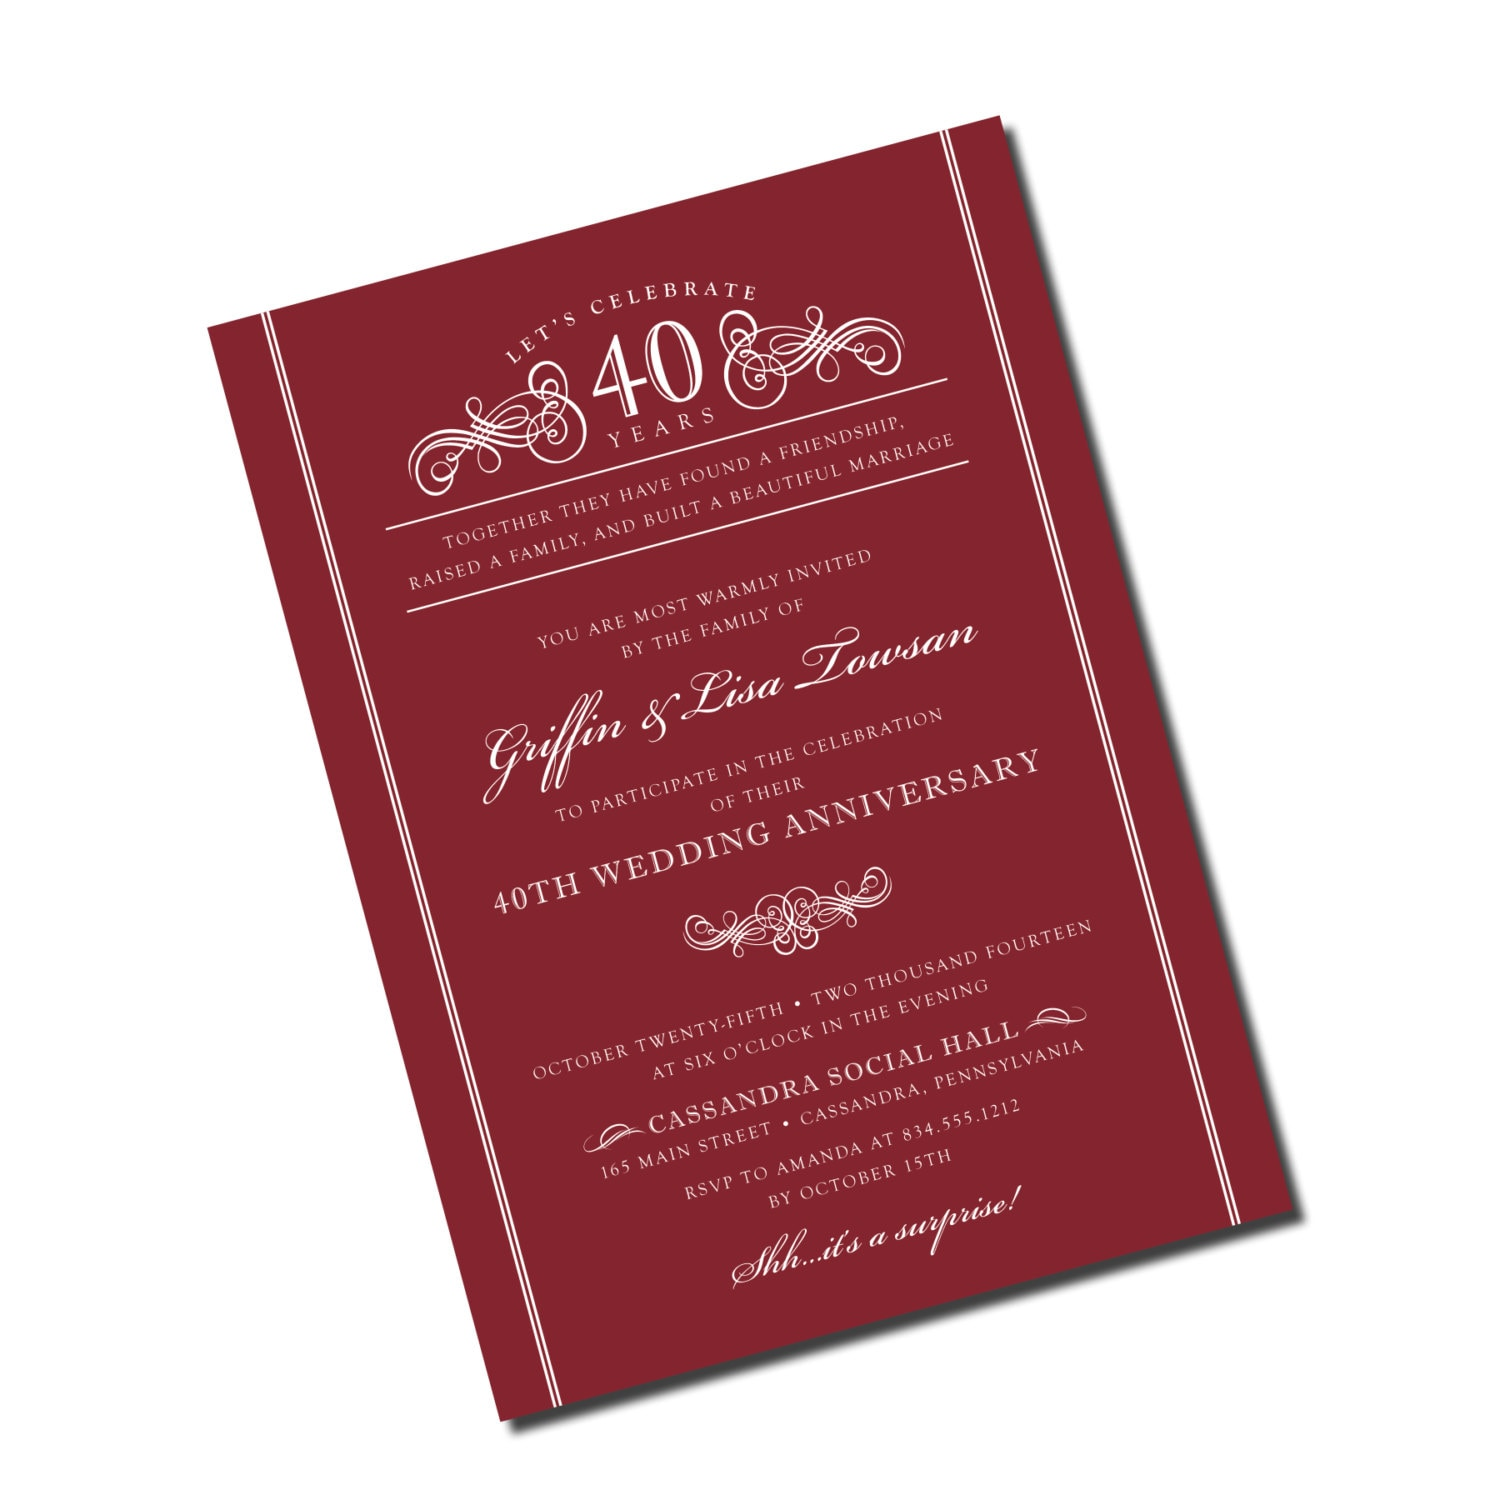 40th wedding anniversary invitation ruby red personalized for 40th wedding anniversary invitations